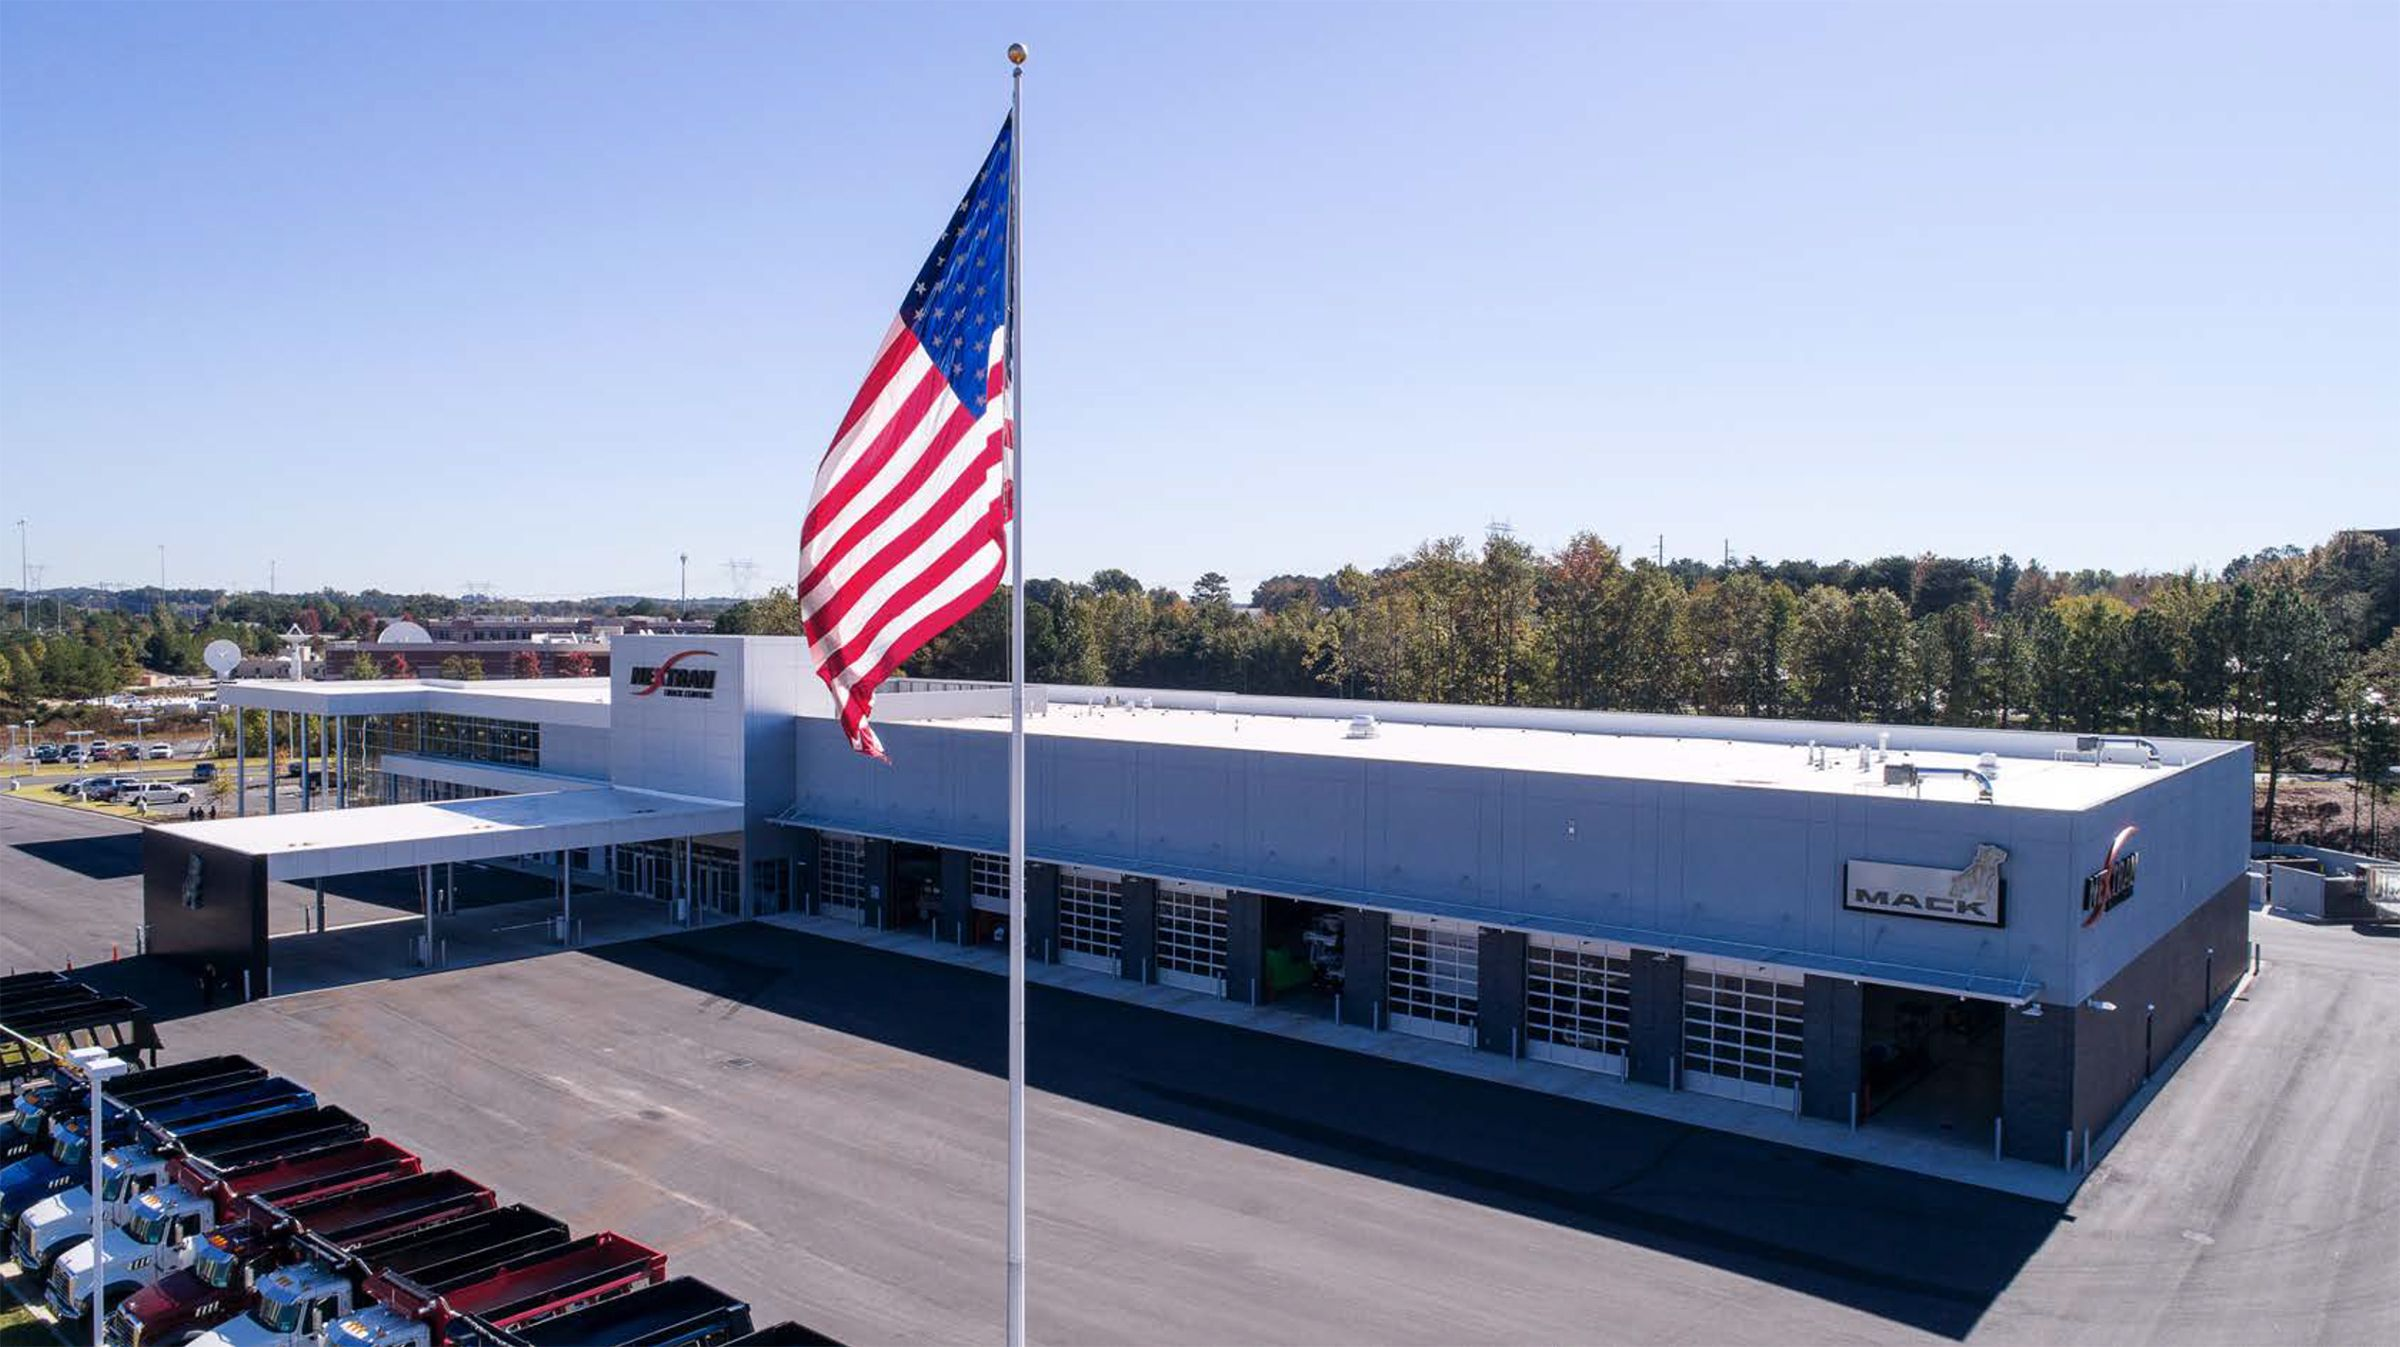 Mack Trucks Dealer Nextran Truck Centers Expands Footprint in U.S. with Acquisition